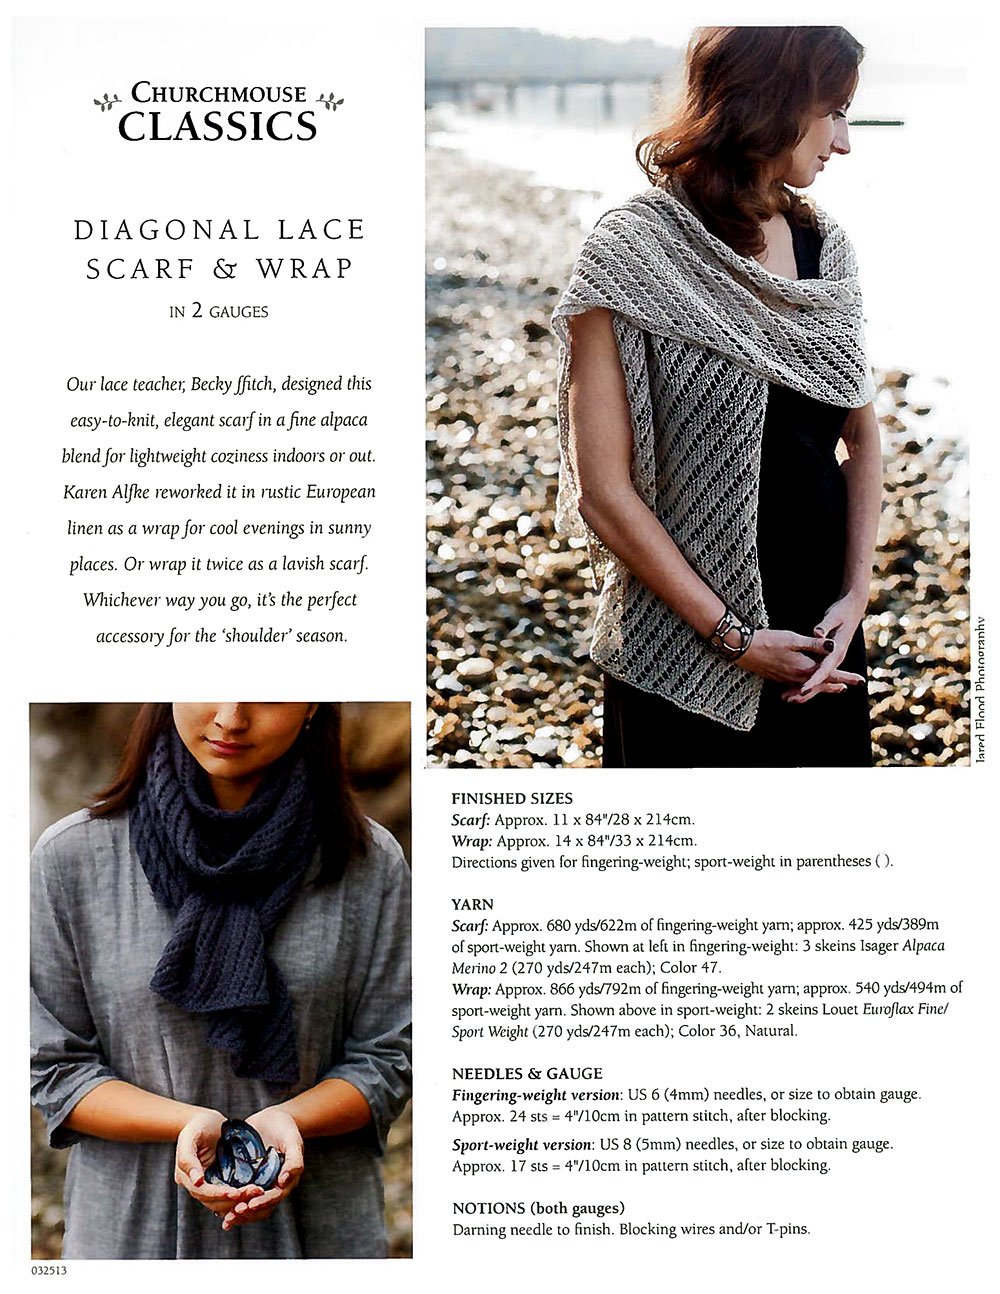 Diagonal Lace Scarf and Wrap - 19960012786